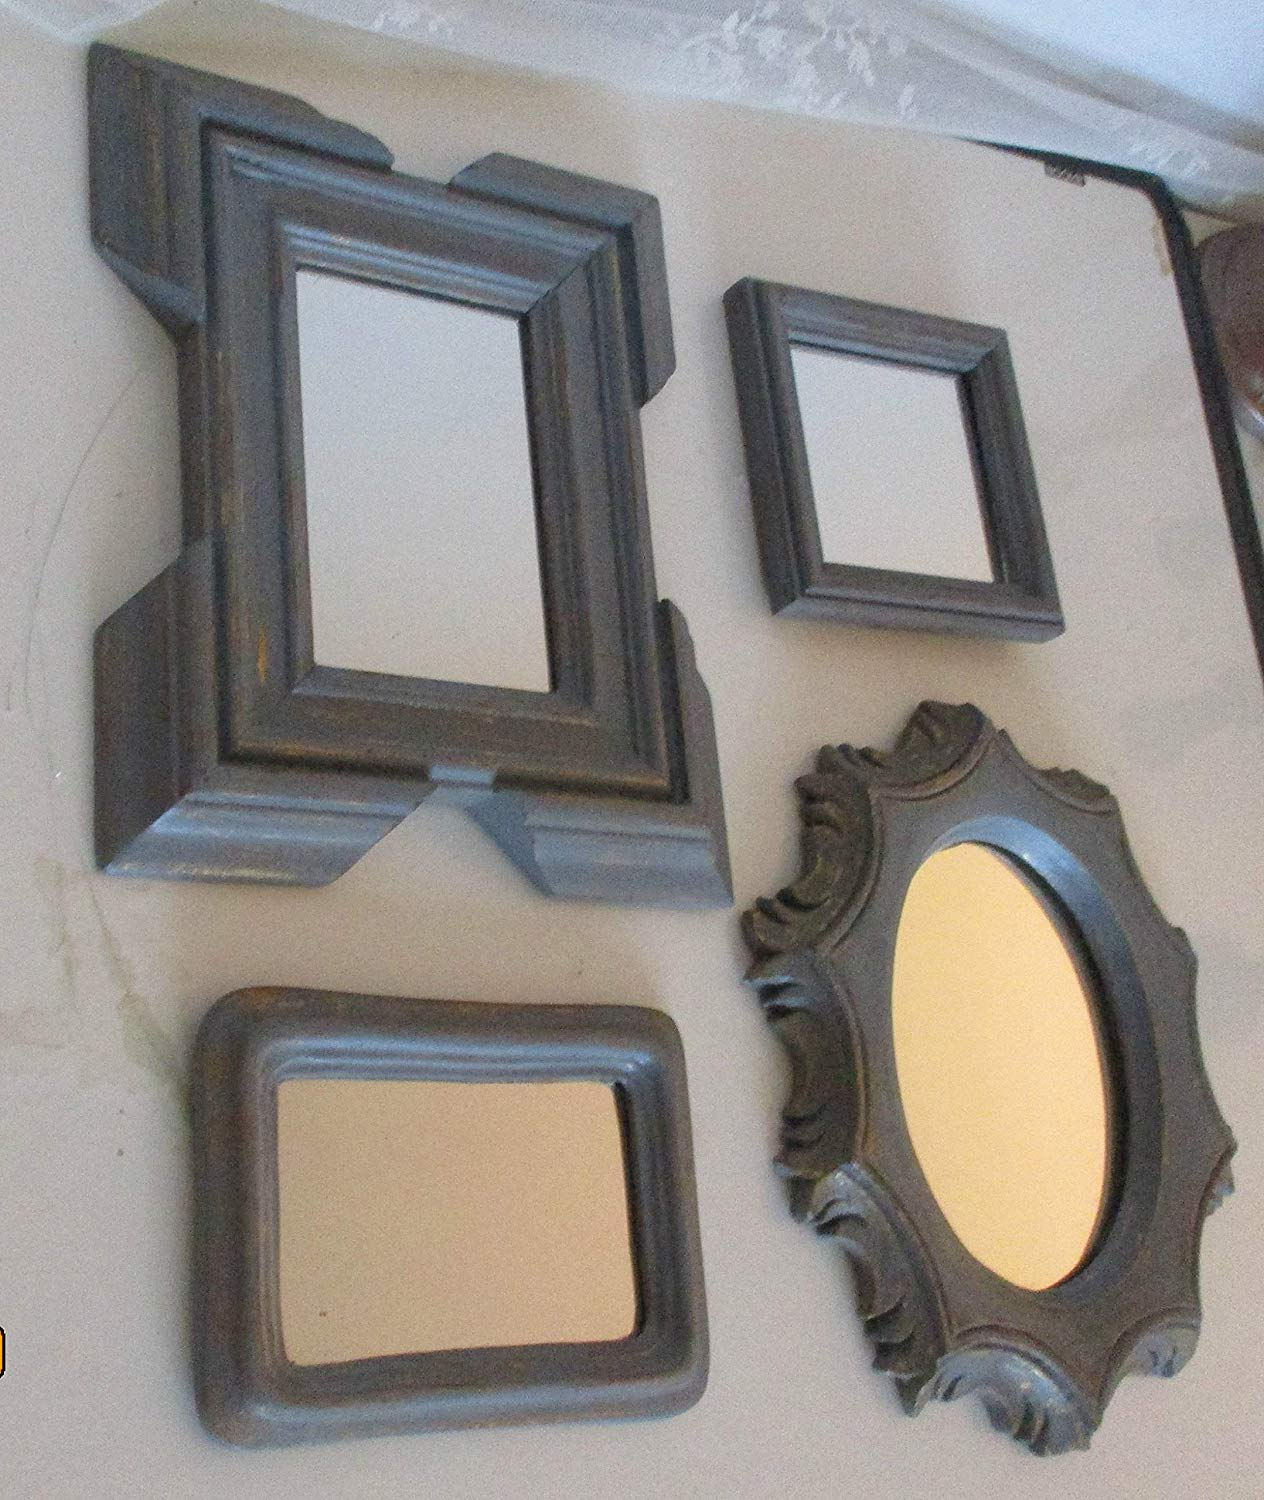 Gallery Wall Mirrors For 2019 Amazon: Wall Mirrors, Grey Mirrors, Gray Mirrors, Decorative (View 13 of 20)